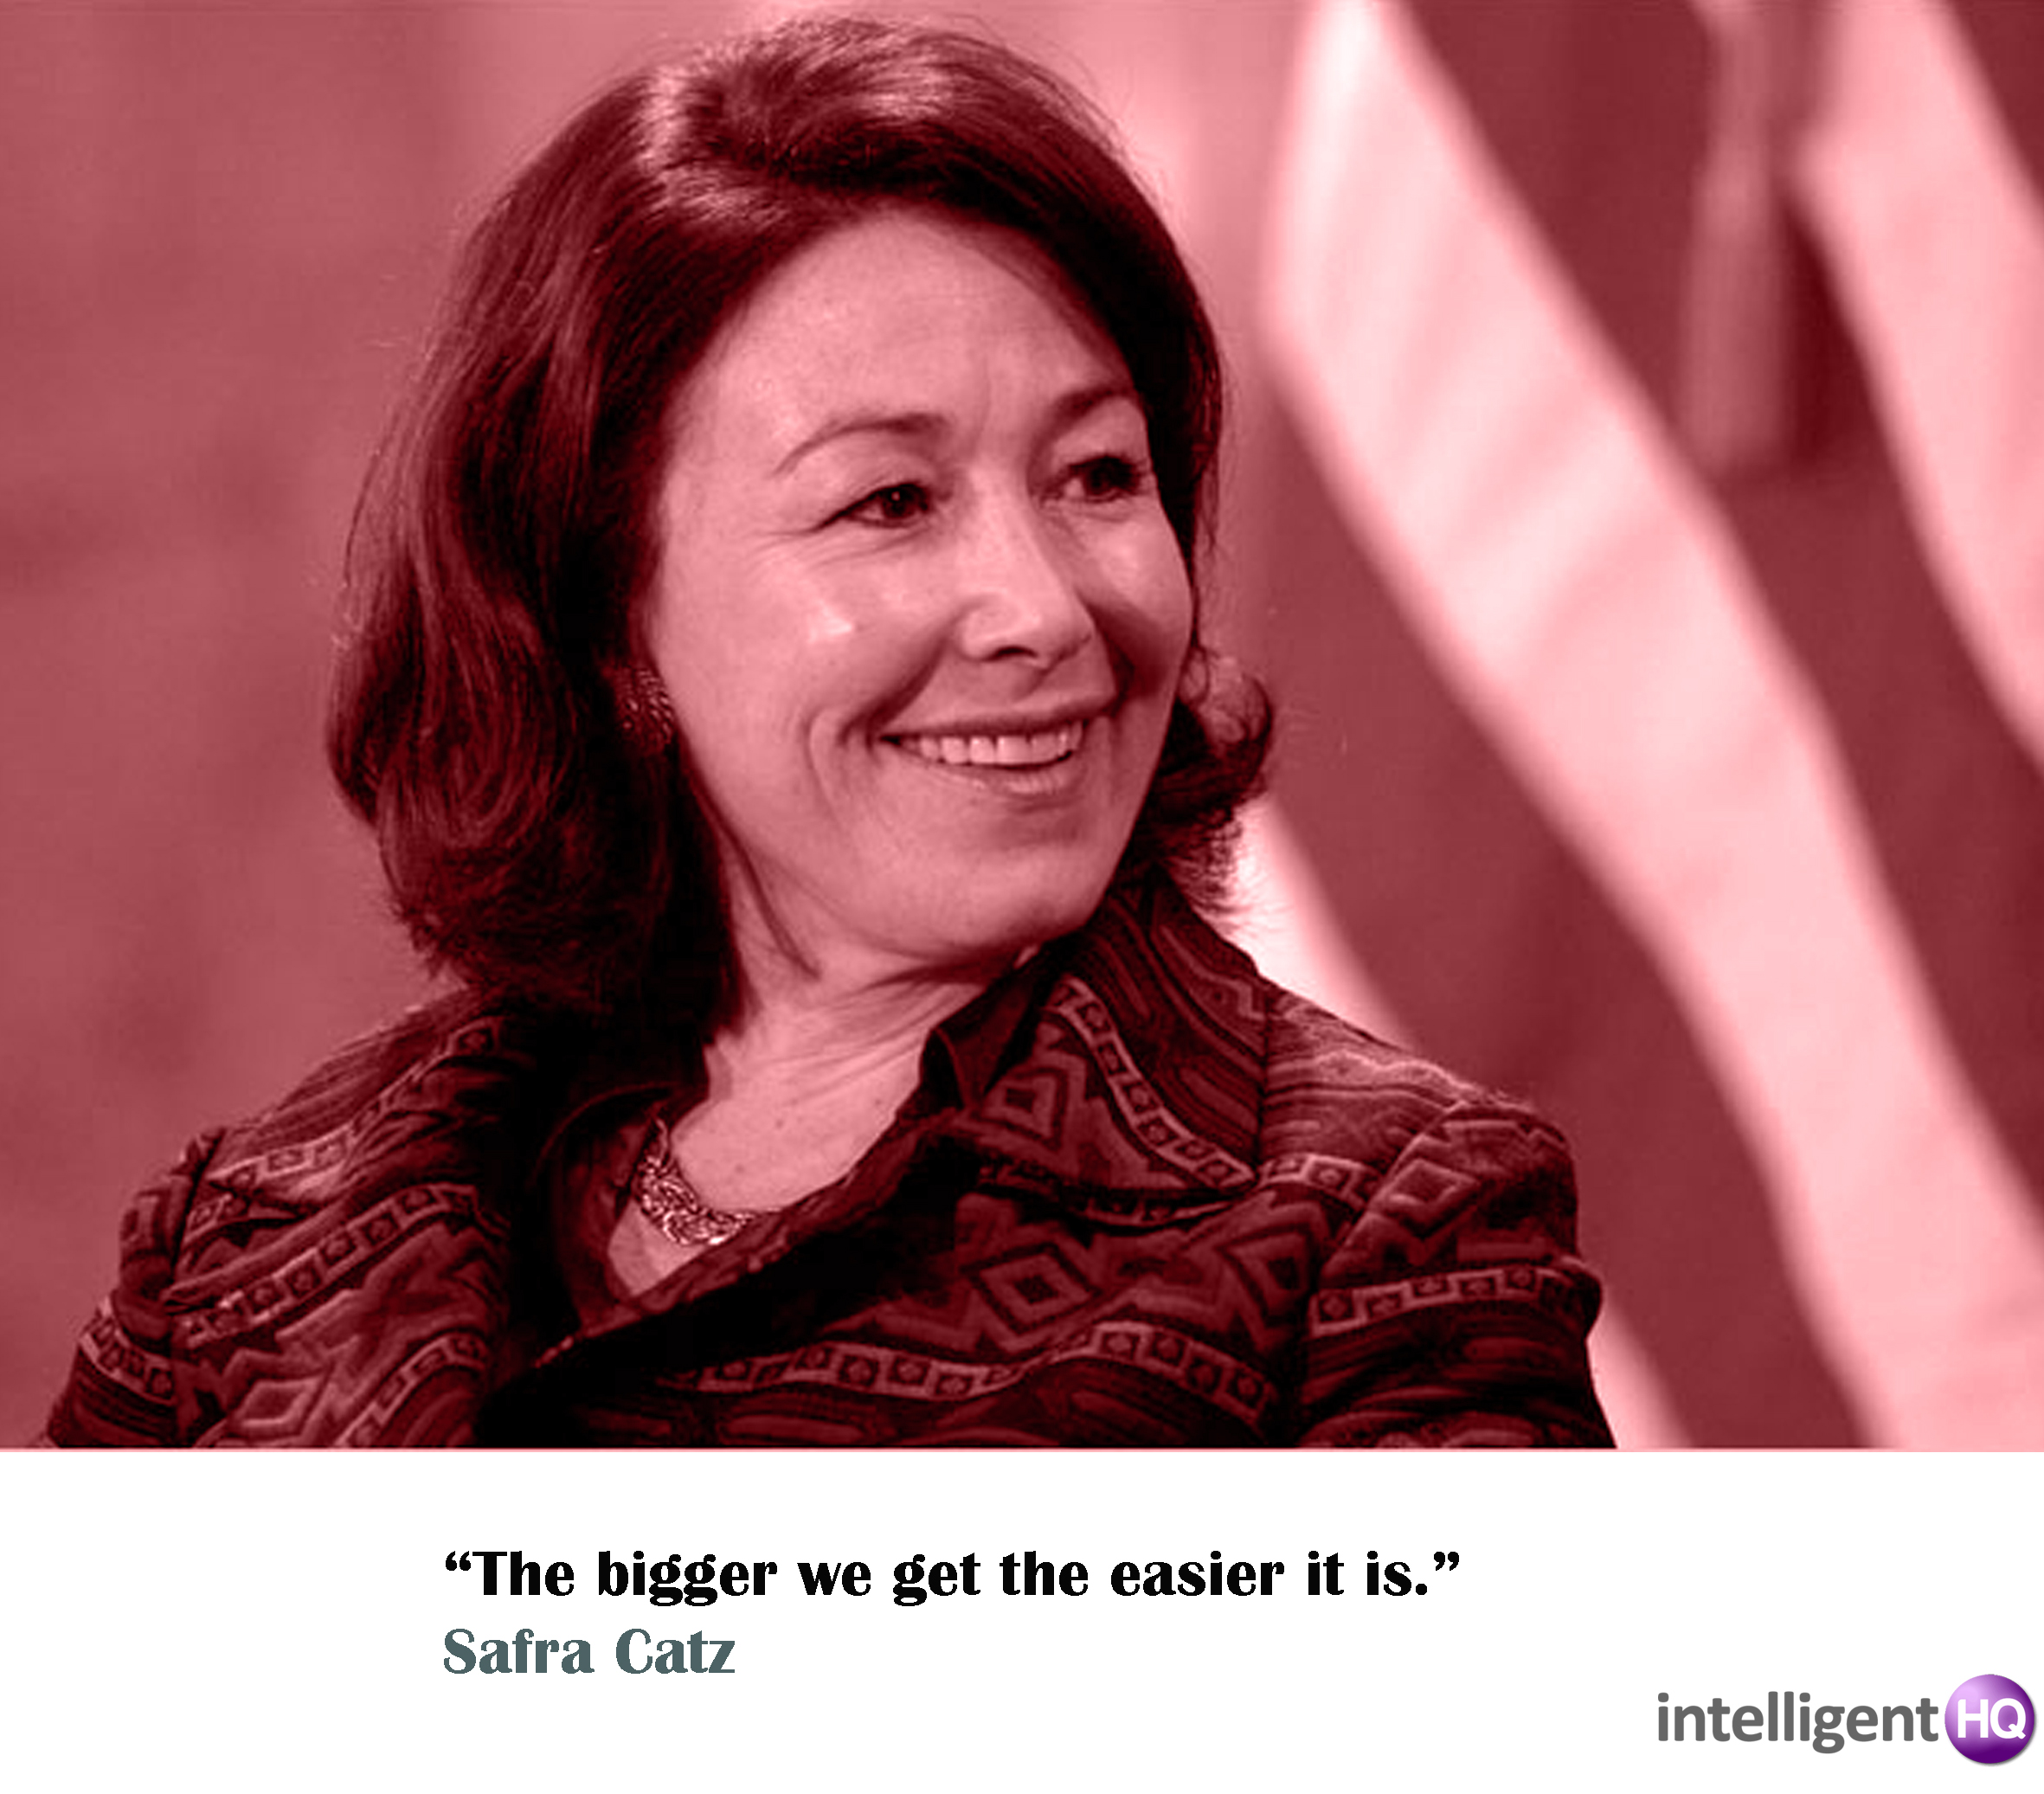 Quote By Safra Catz. Intelligenthq